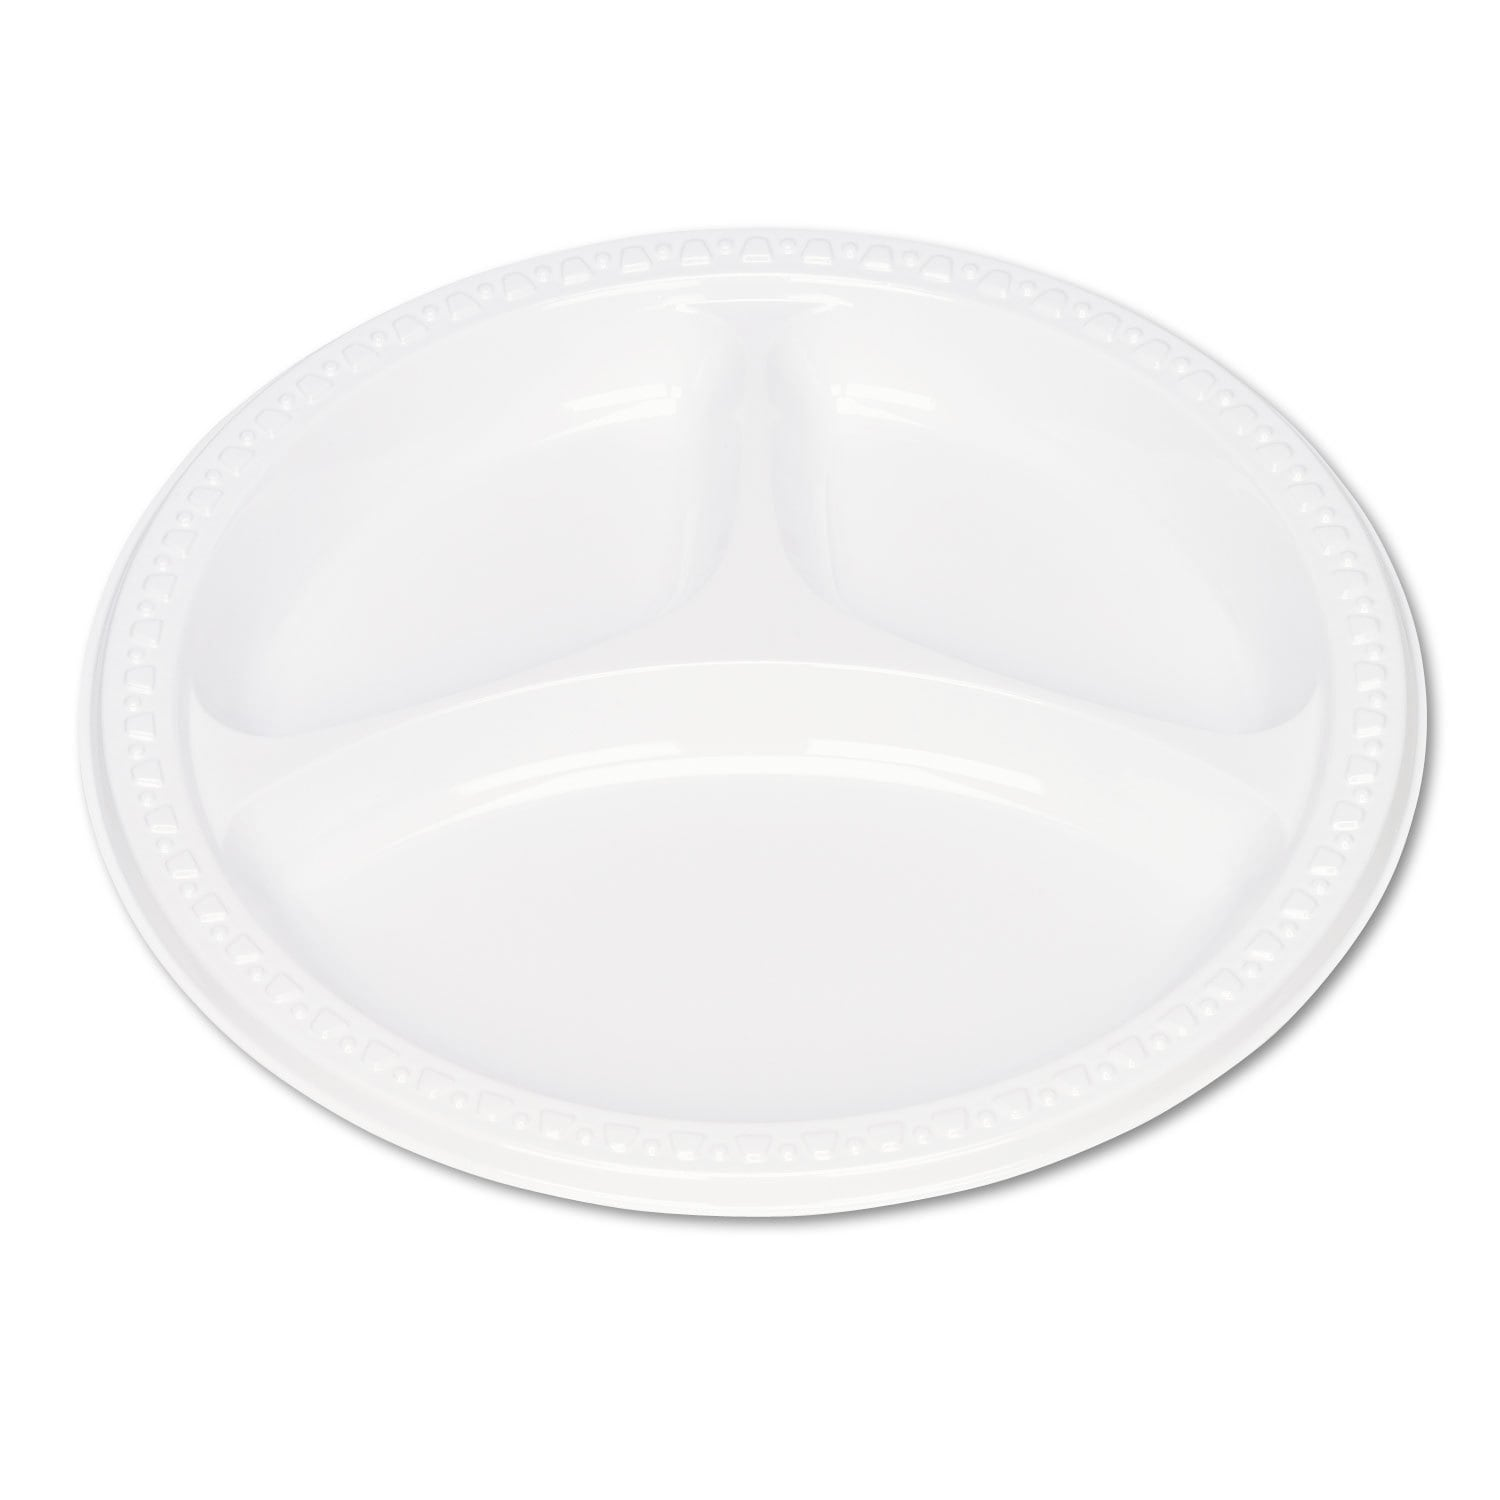 Tablemate Plastic Dinnerware Compartment Plates 9 inches ...